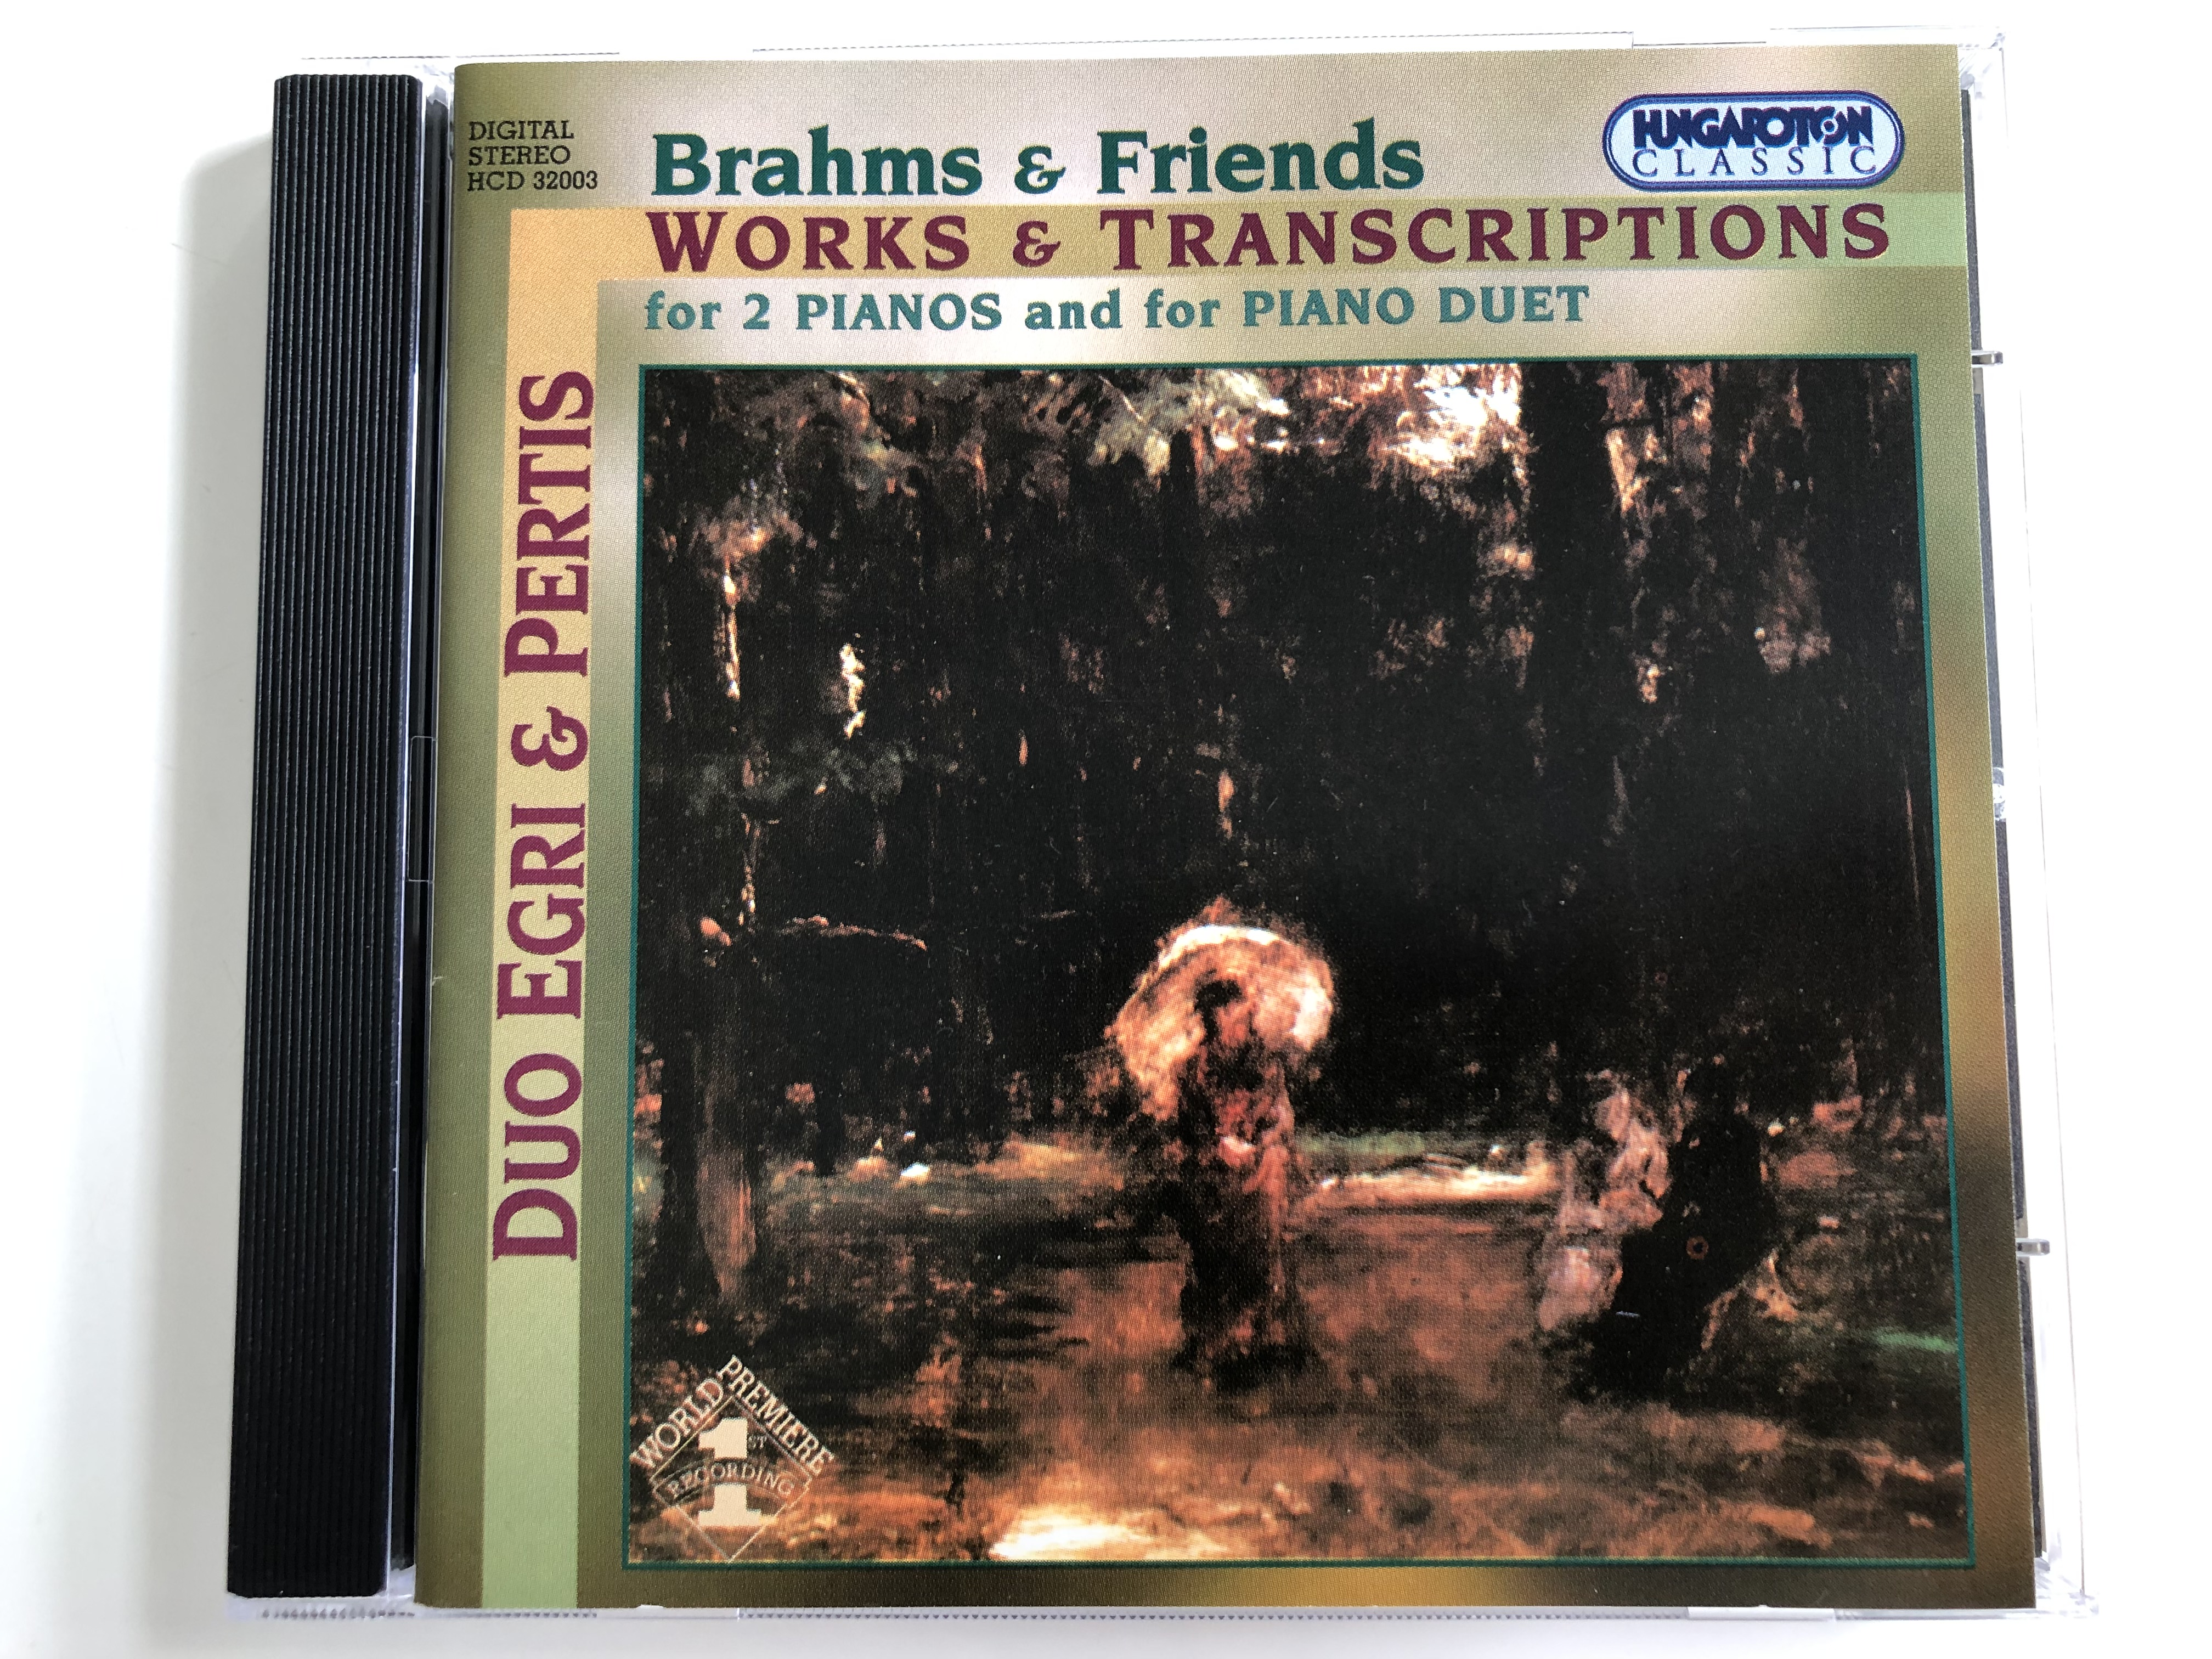 brahms-friends-works-transcriptioons-for-2-pianos-and-for-piano-duet-duo-egri-pertis-hungaroton-audio-cd-2003-stereo-hcd-32003-1-.jpg